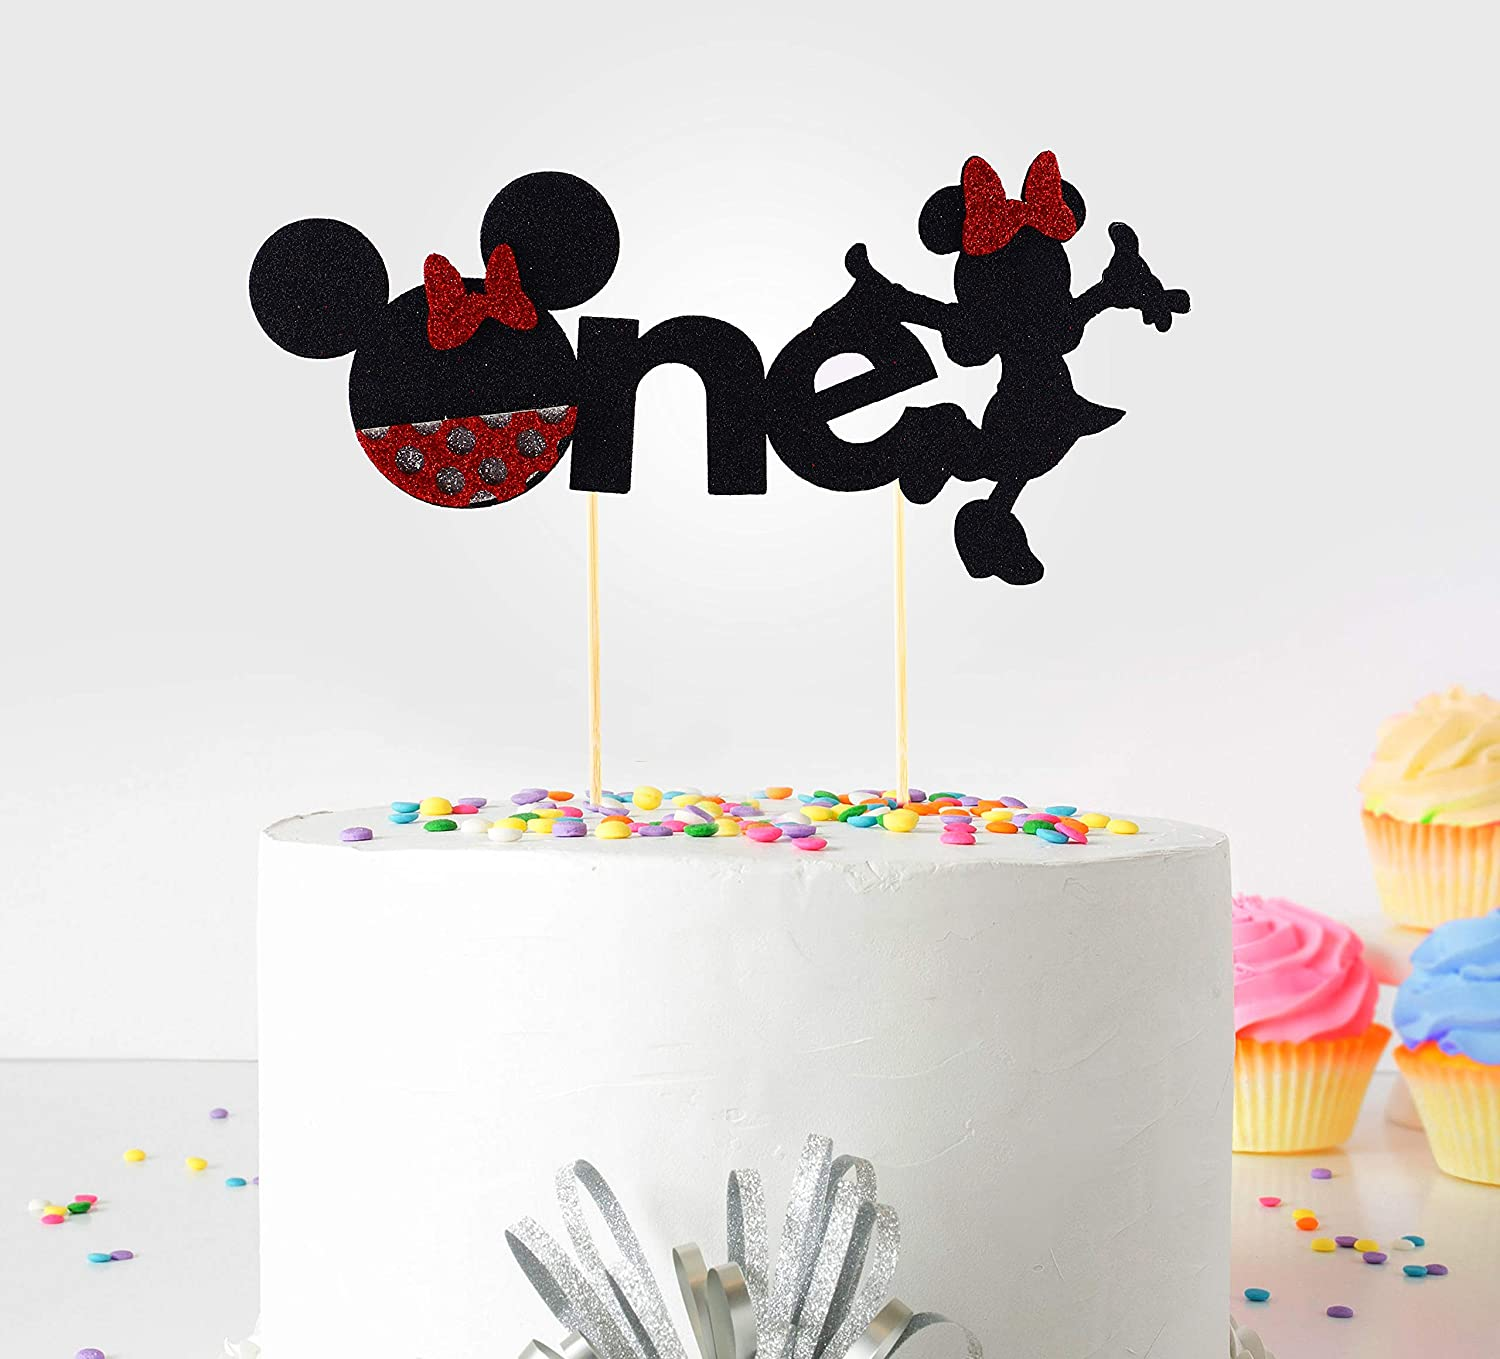 Stupendous 1St First Birthday Cake Topper Decoration Minnie Mickey Mouse Funny Birthday Cards Online Inifodamsfinfo